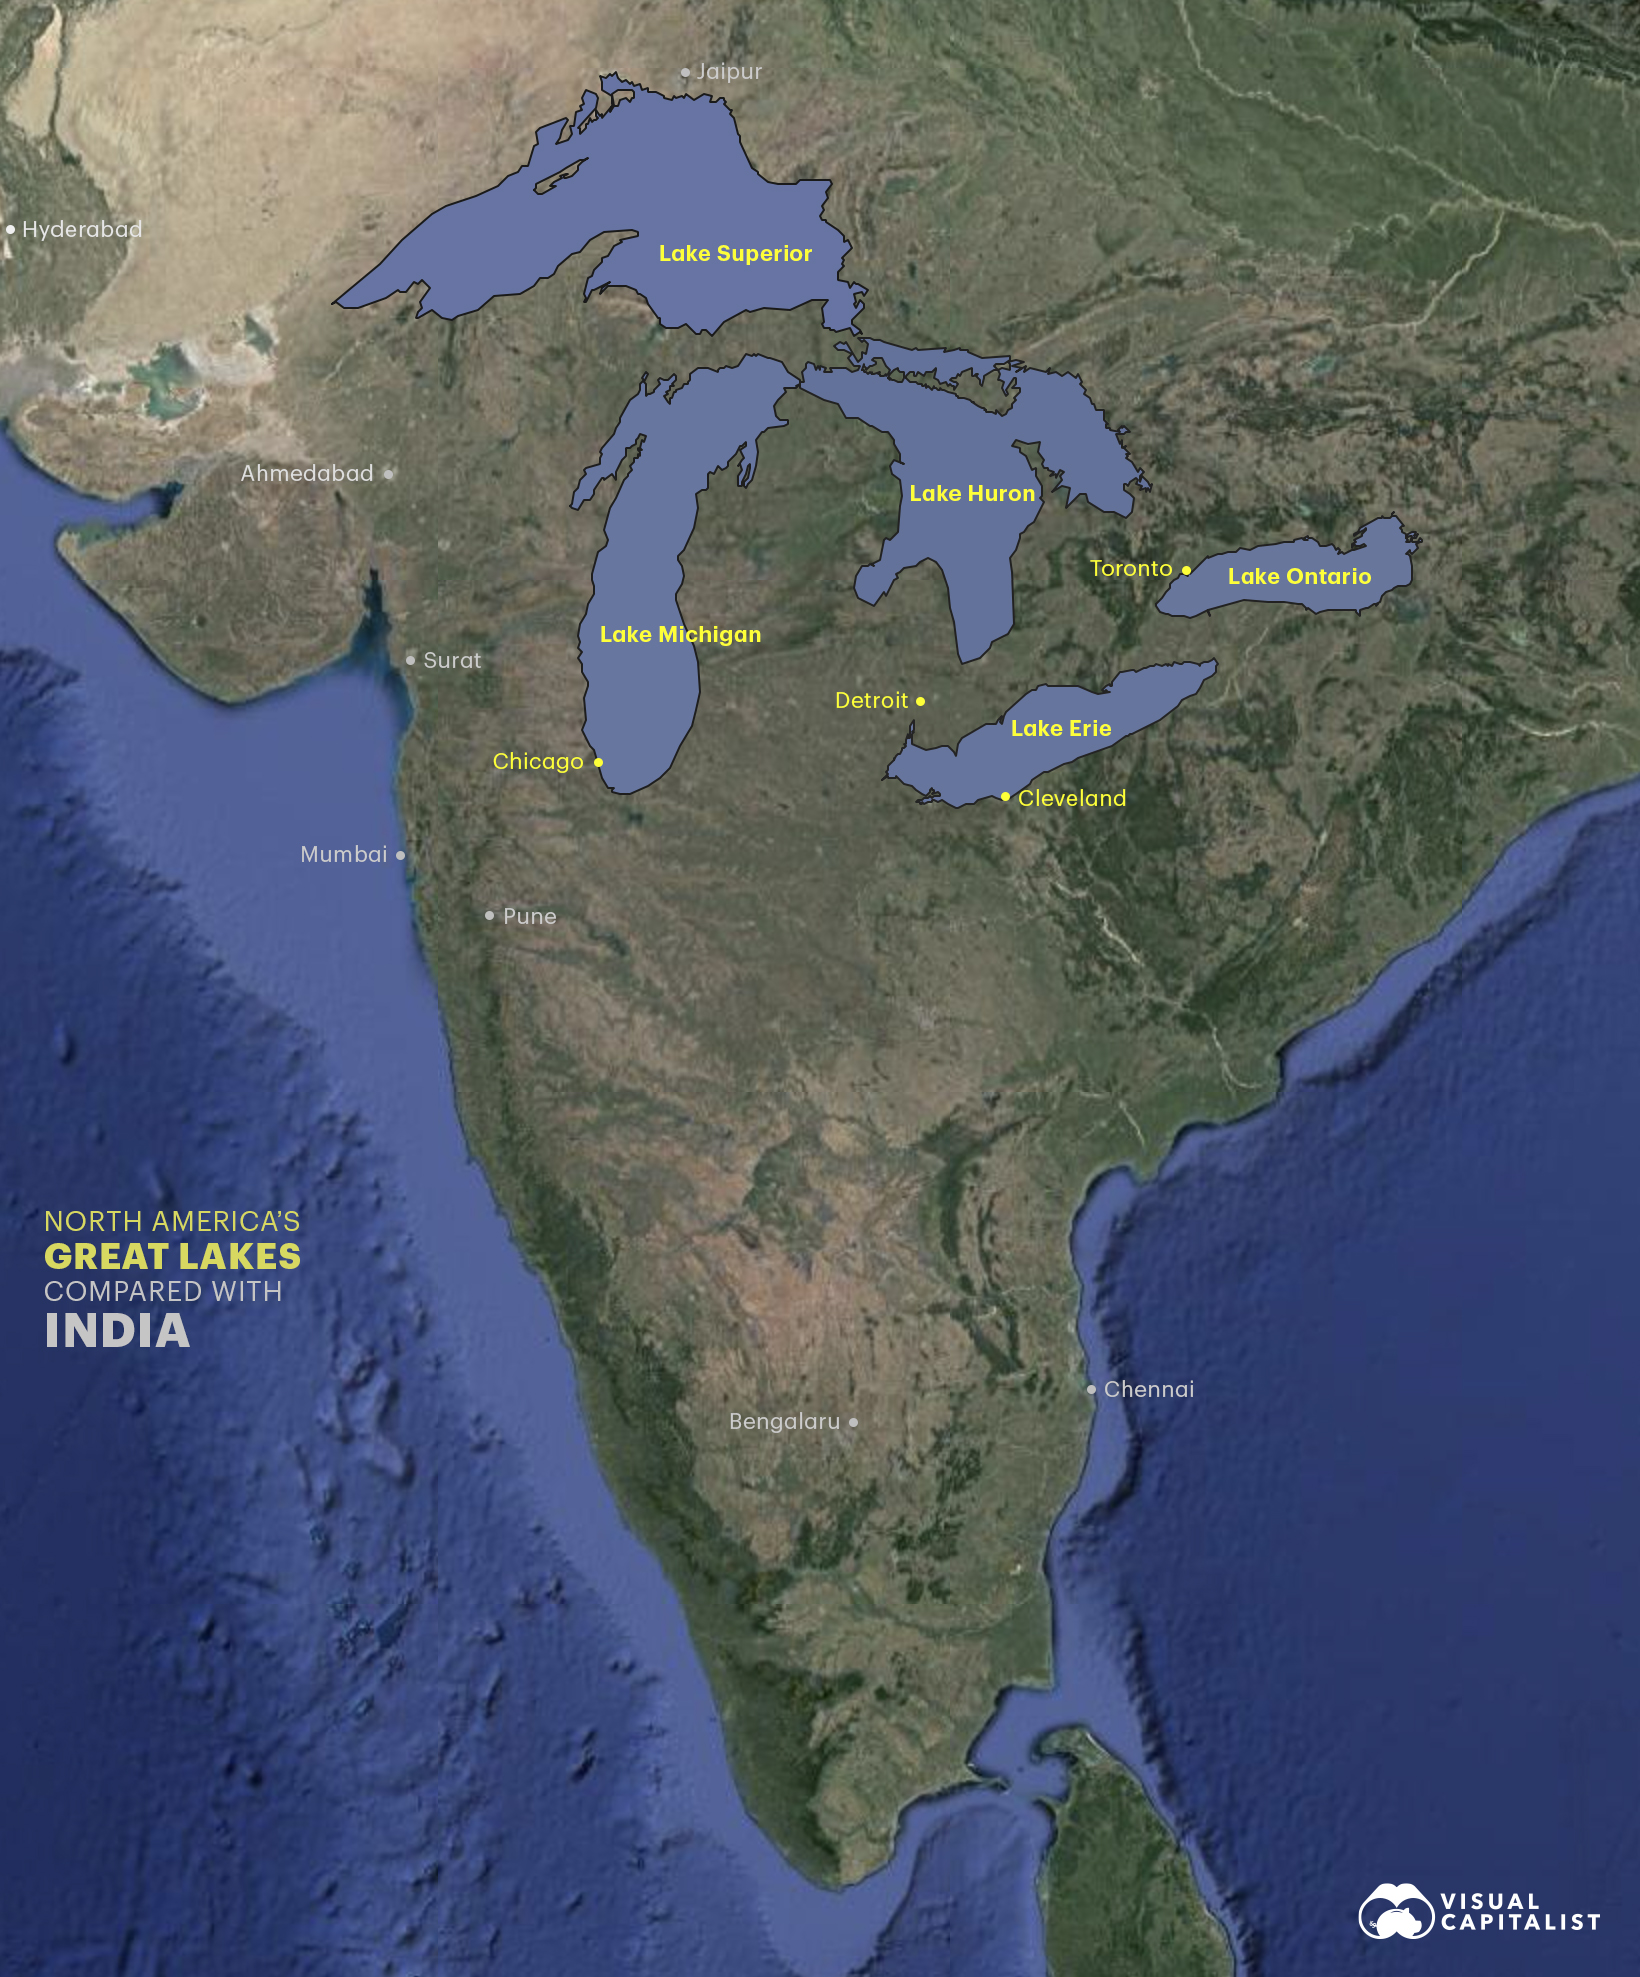 great lakes compared with india